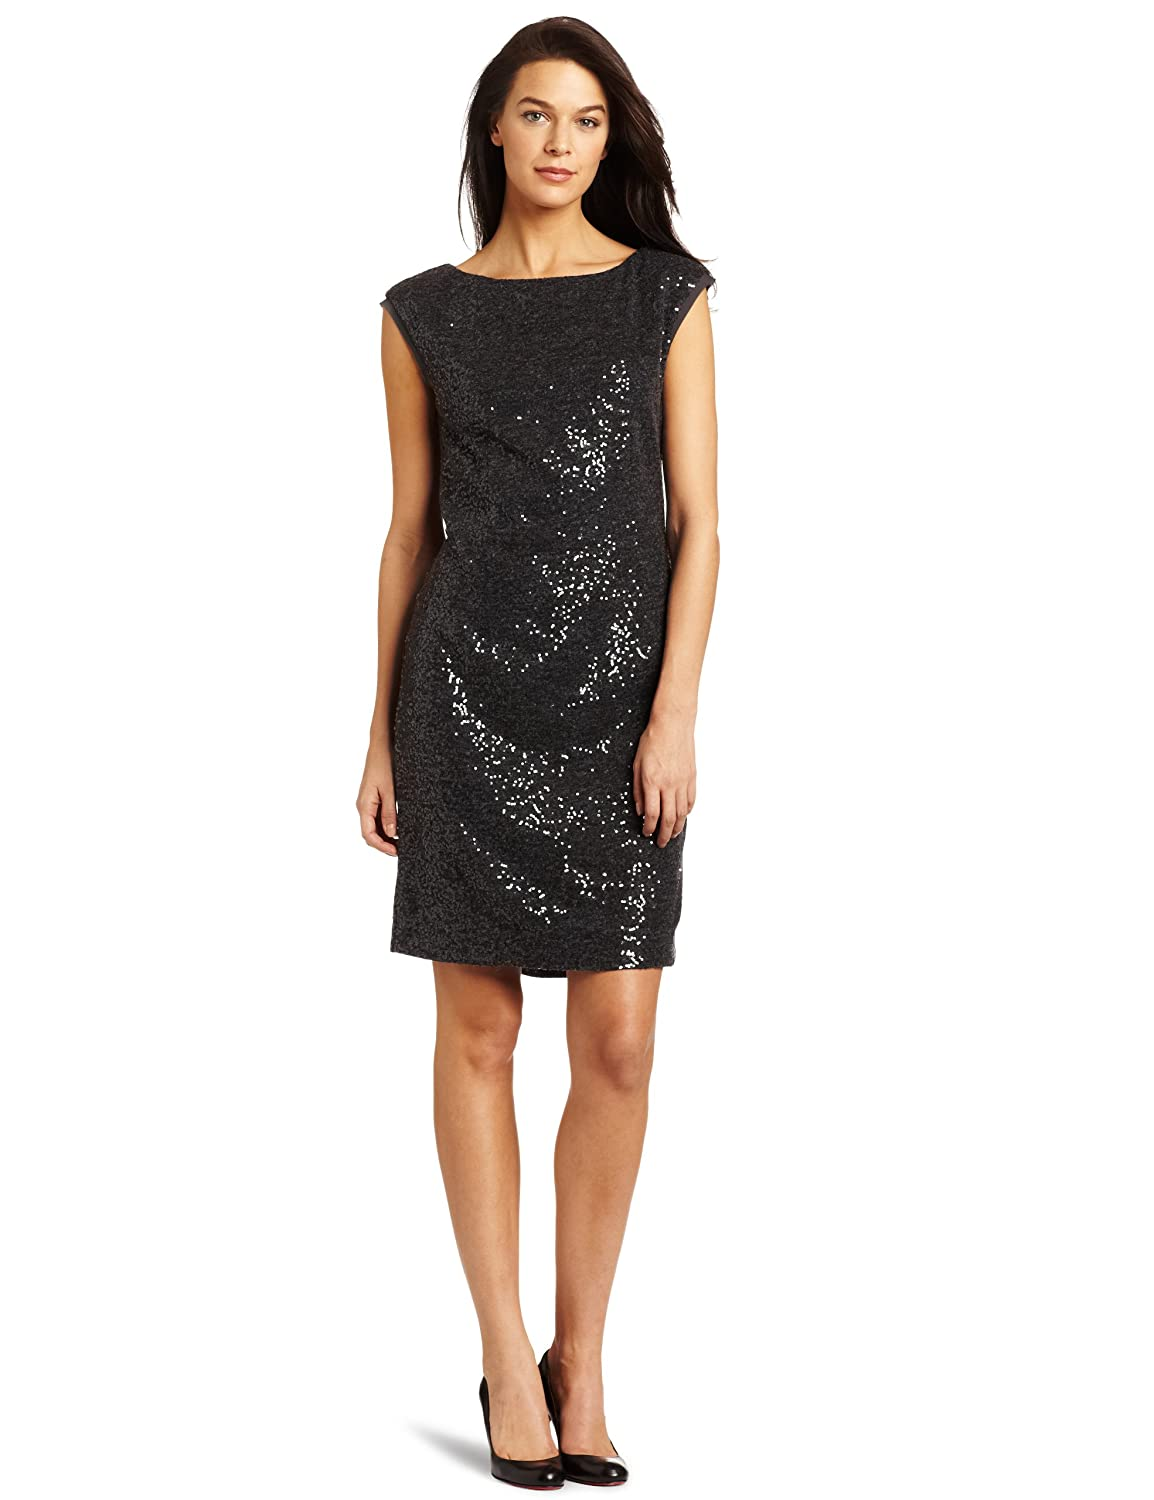 Sequin Dresses Under 20